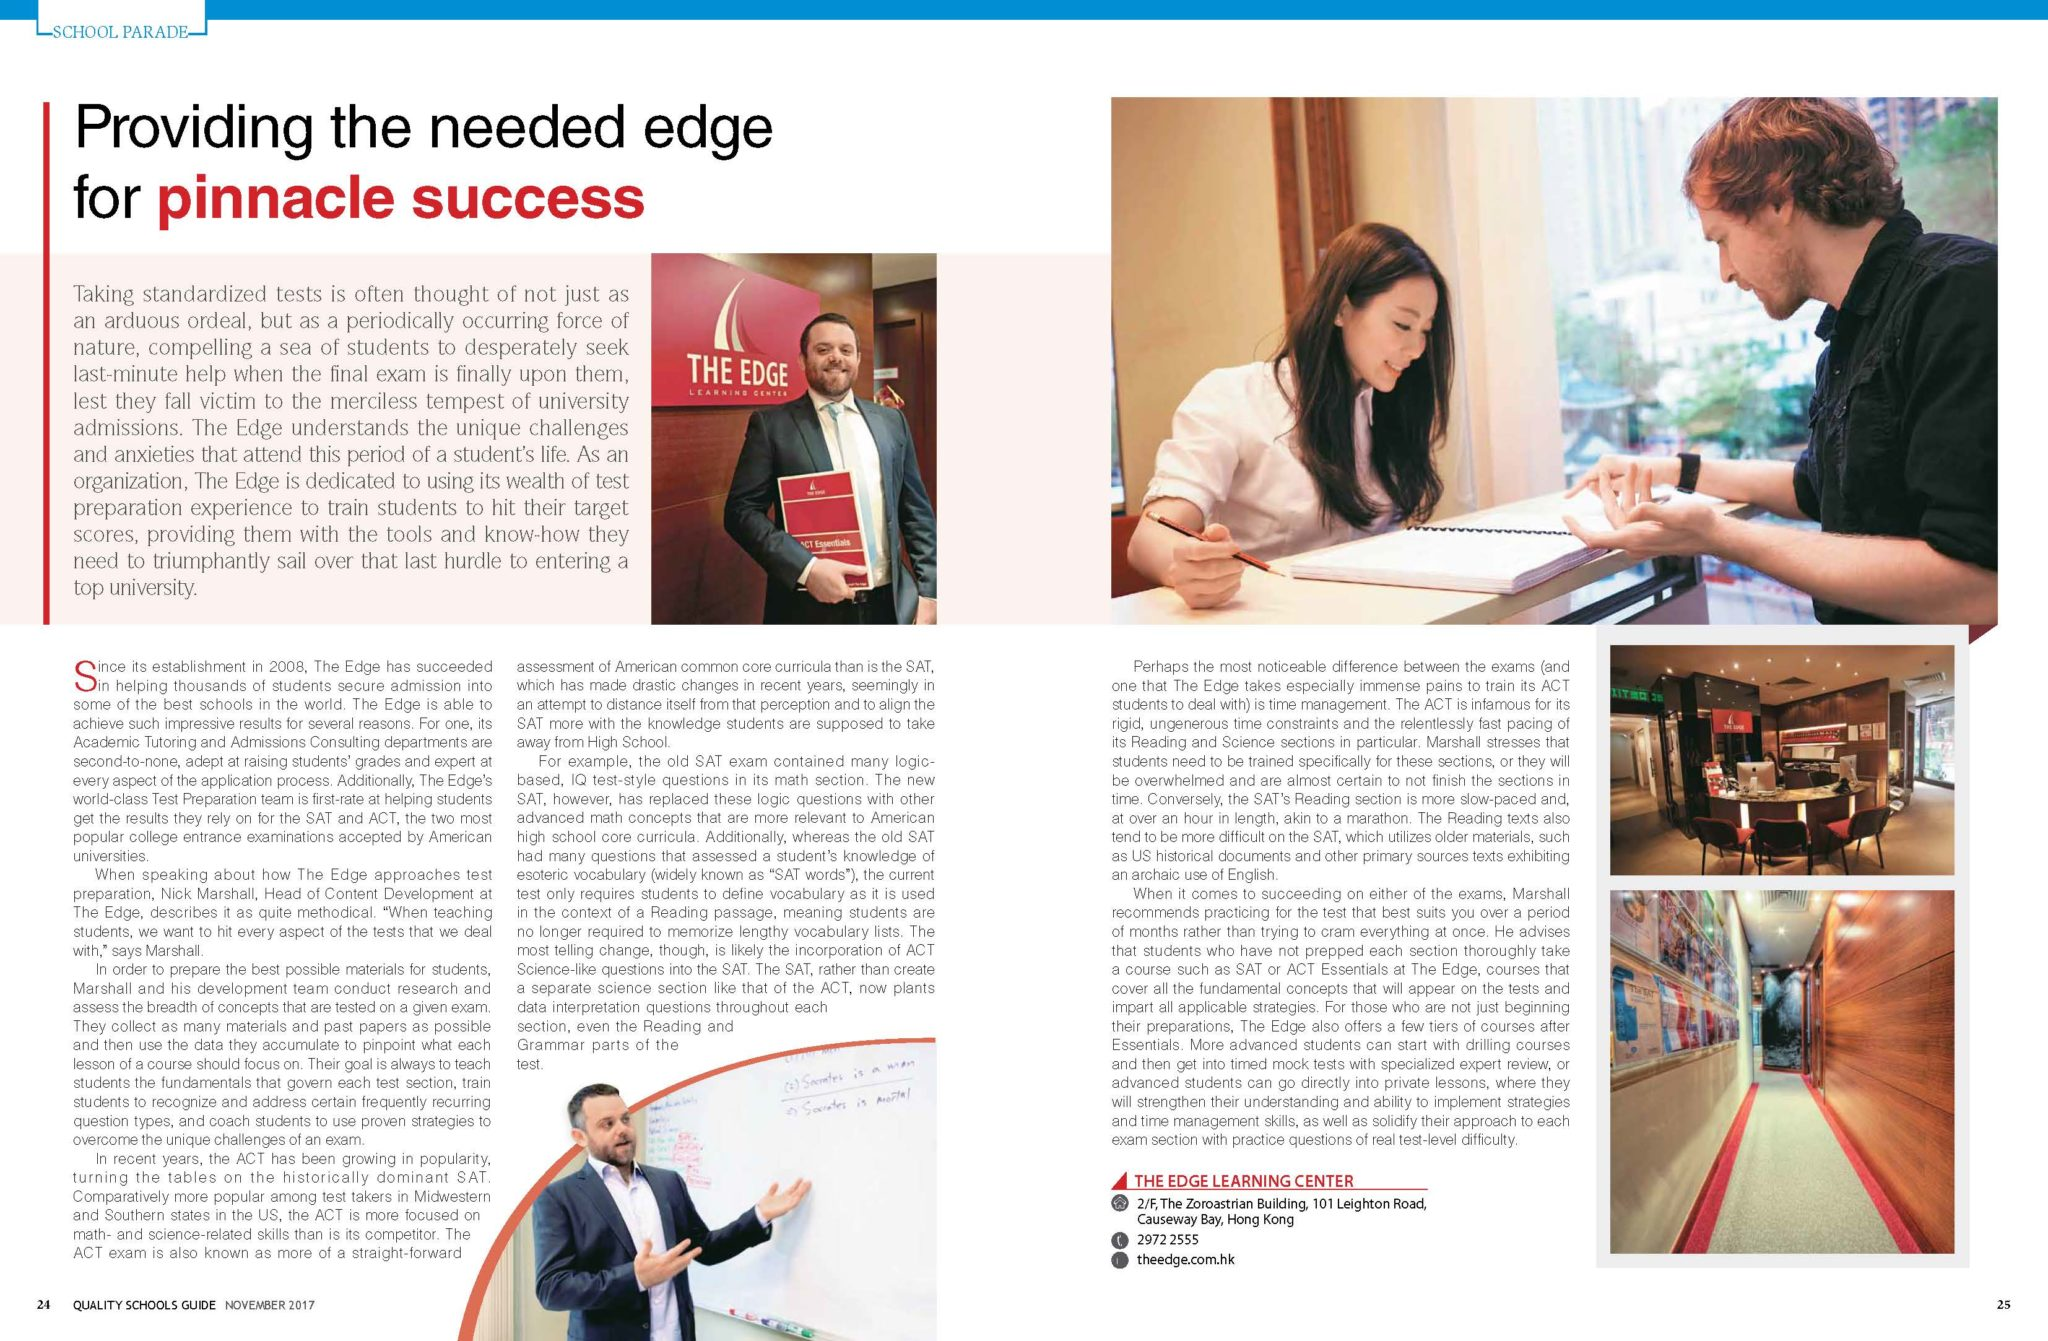 Providing The Needed Edge For Pinnacle Success